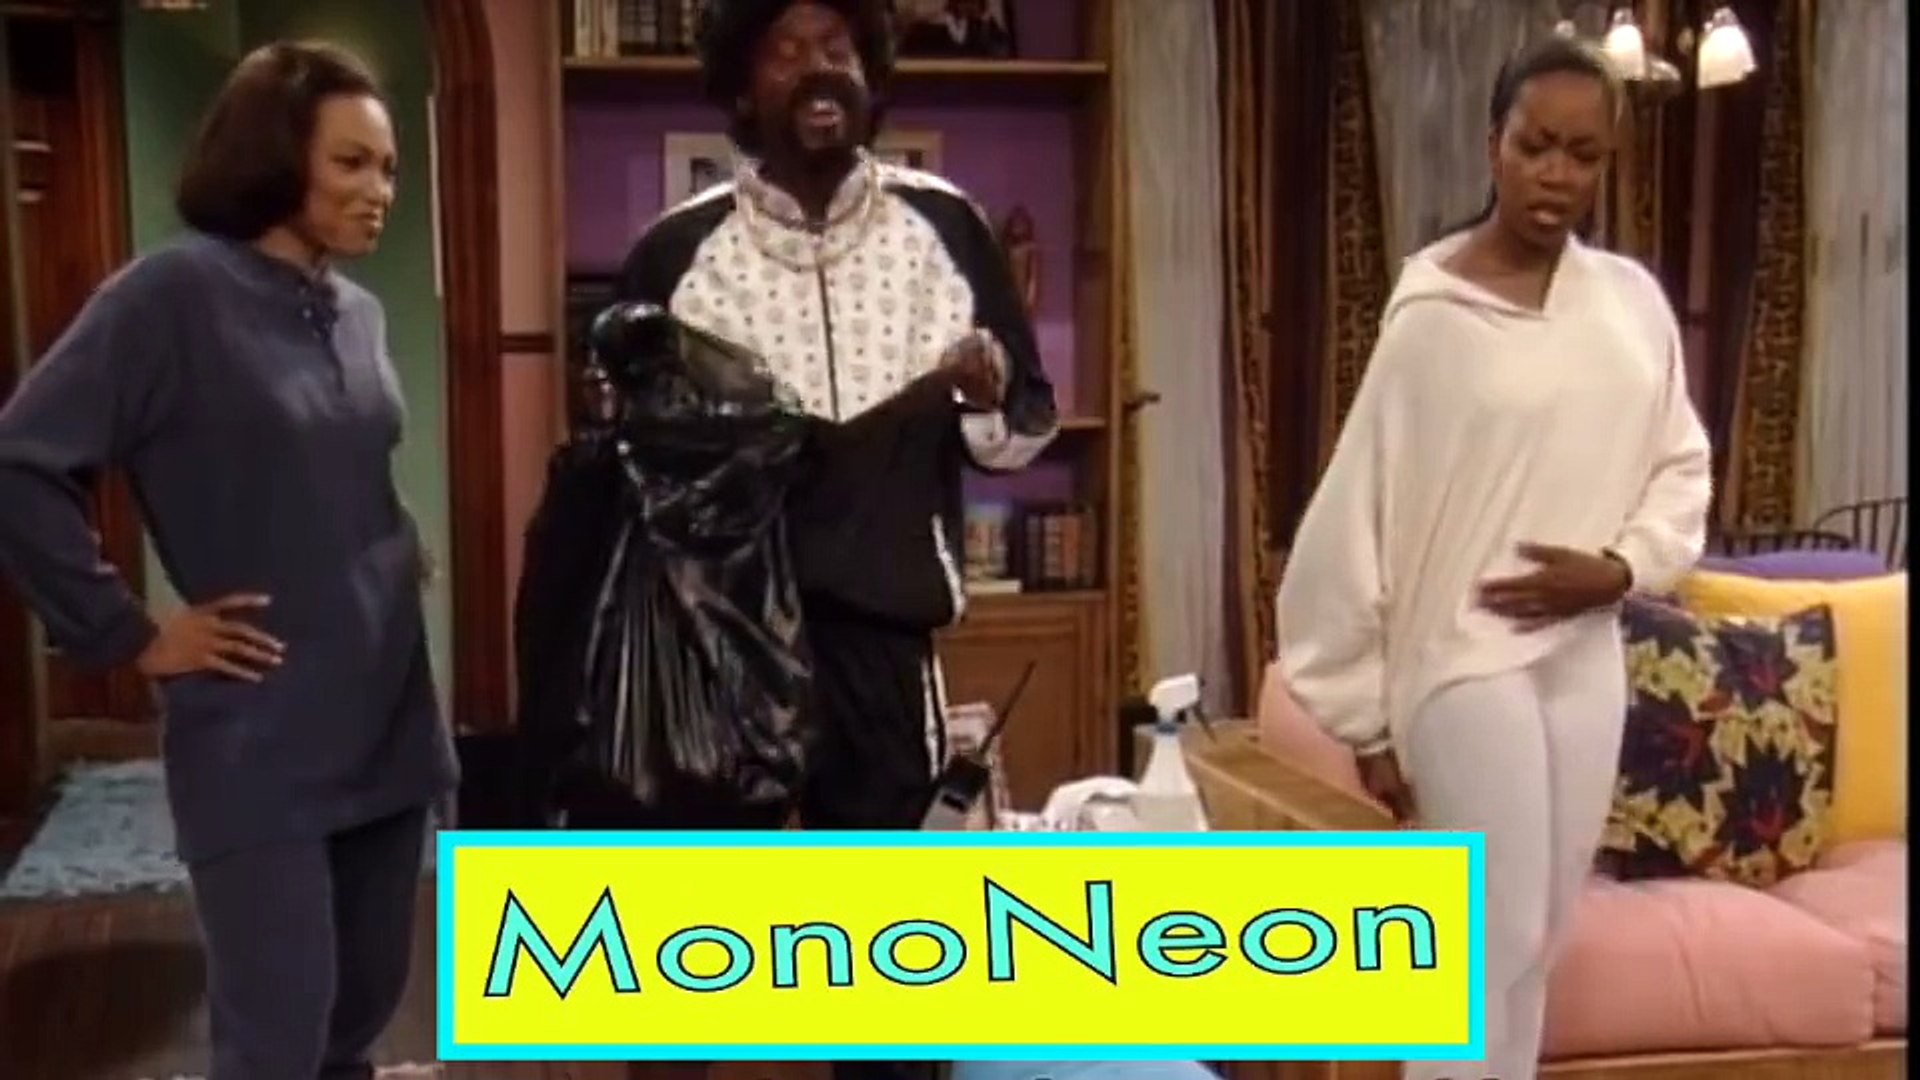 MonoNeon: Jerome & Pretty Teddy (Martin Lawrence Show)